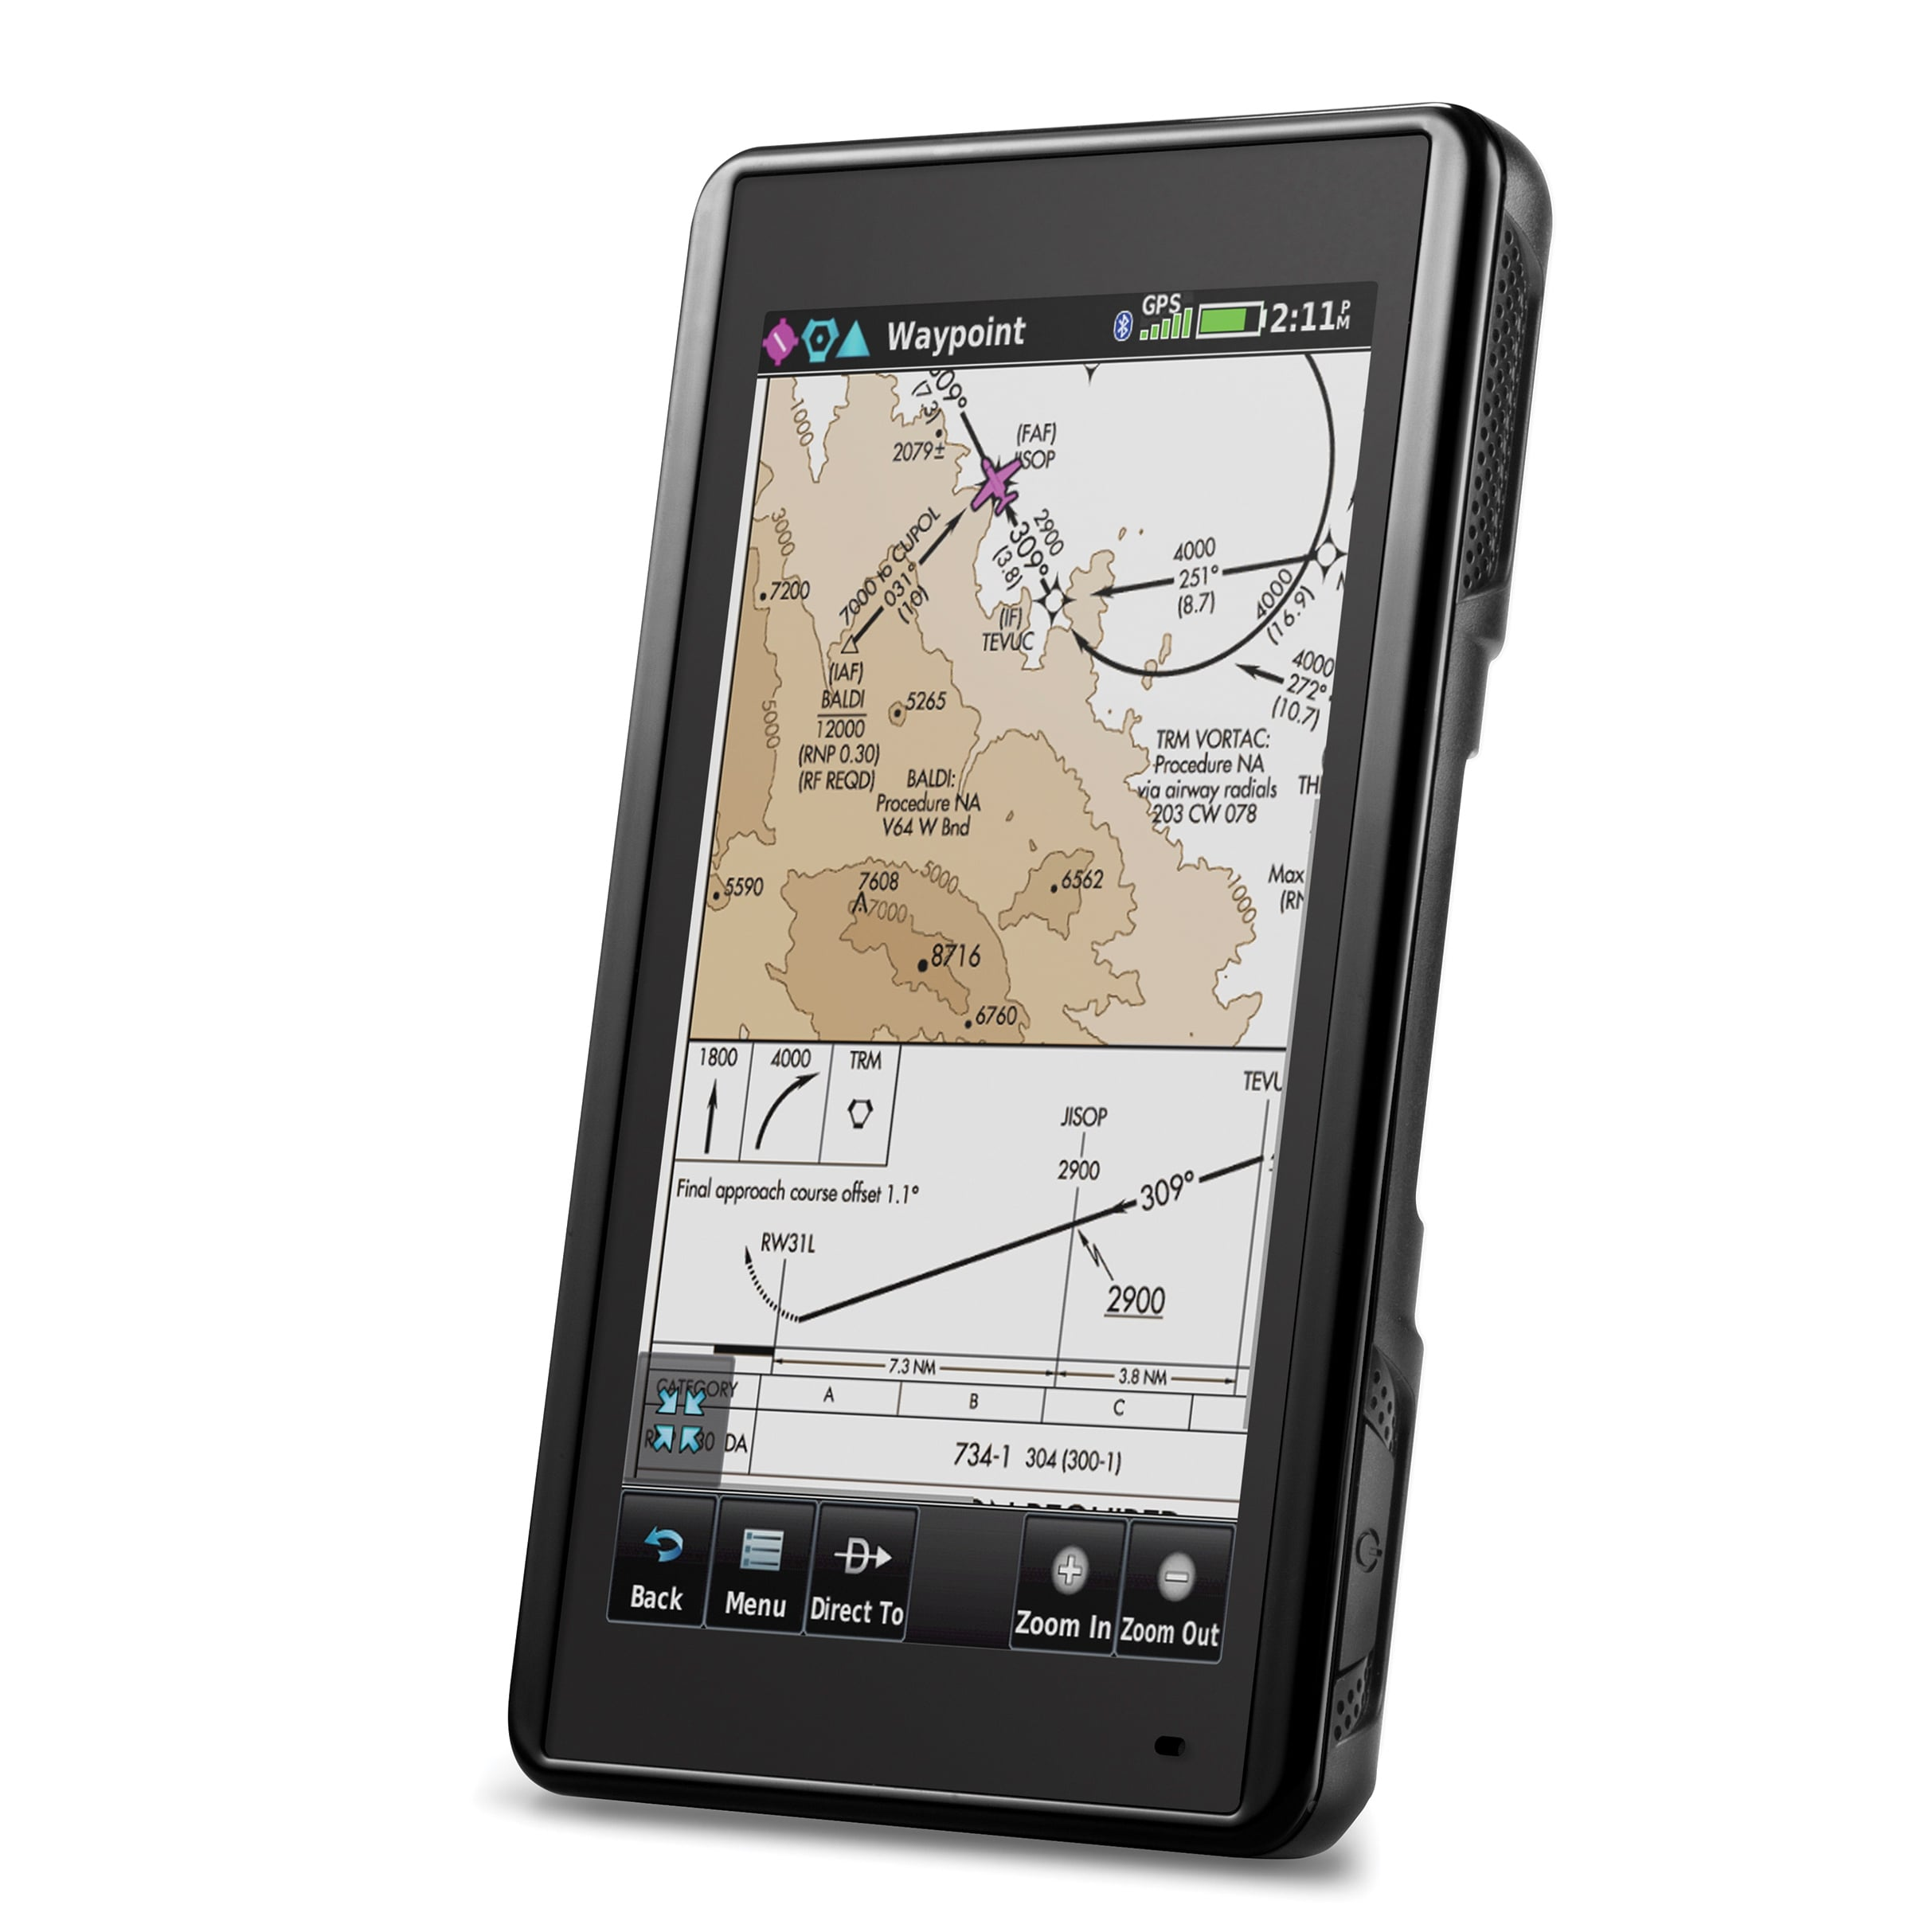 Garmin 660 Gps Wiring Diagram 182 Schematic Diagrams Zumo 590 Aera Portabel Aviation 5212